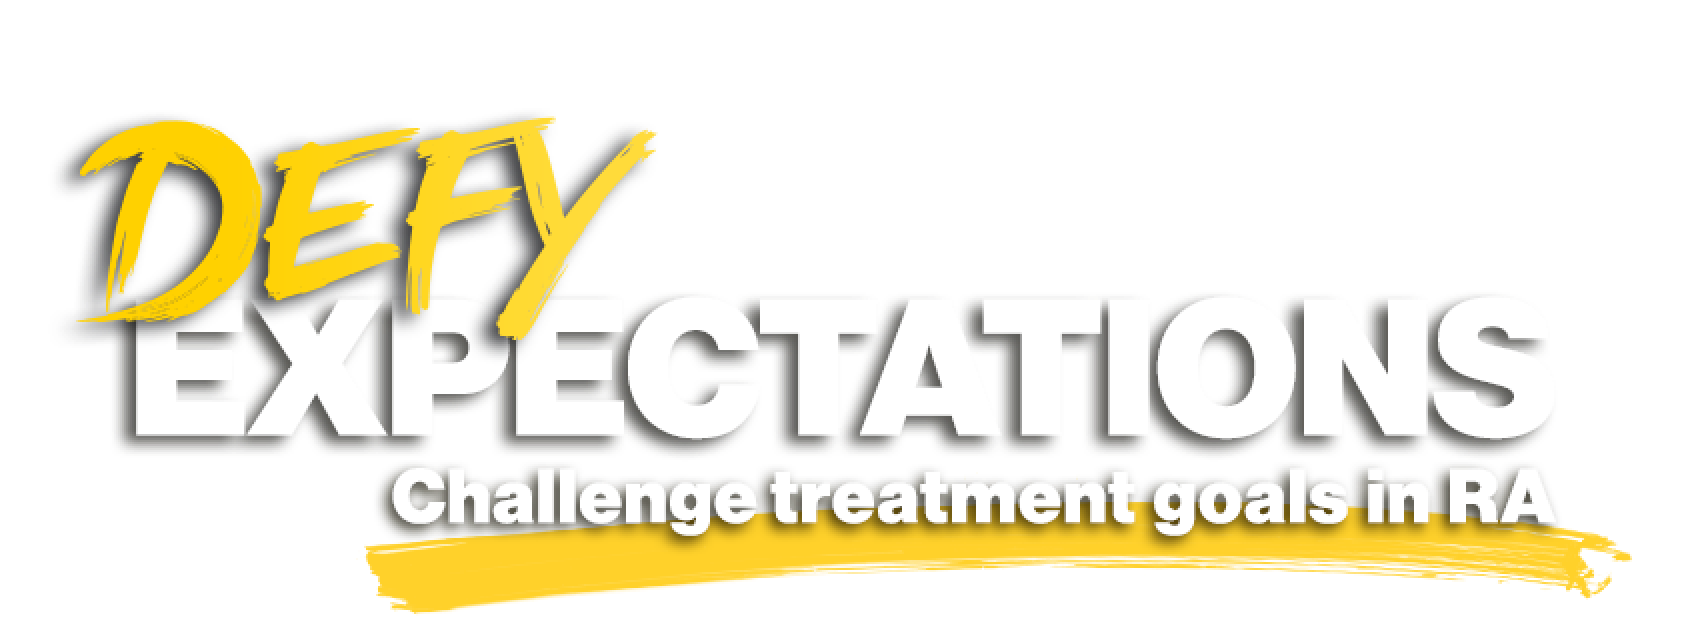 Defy Expectations - Challenge treatment goals in RA